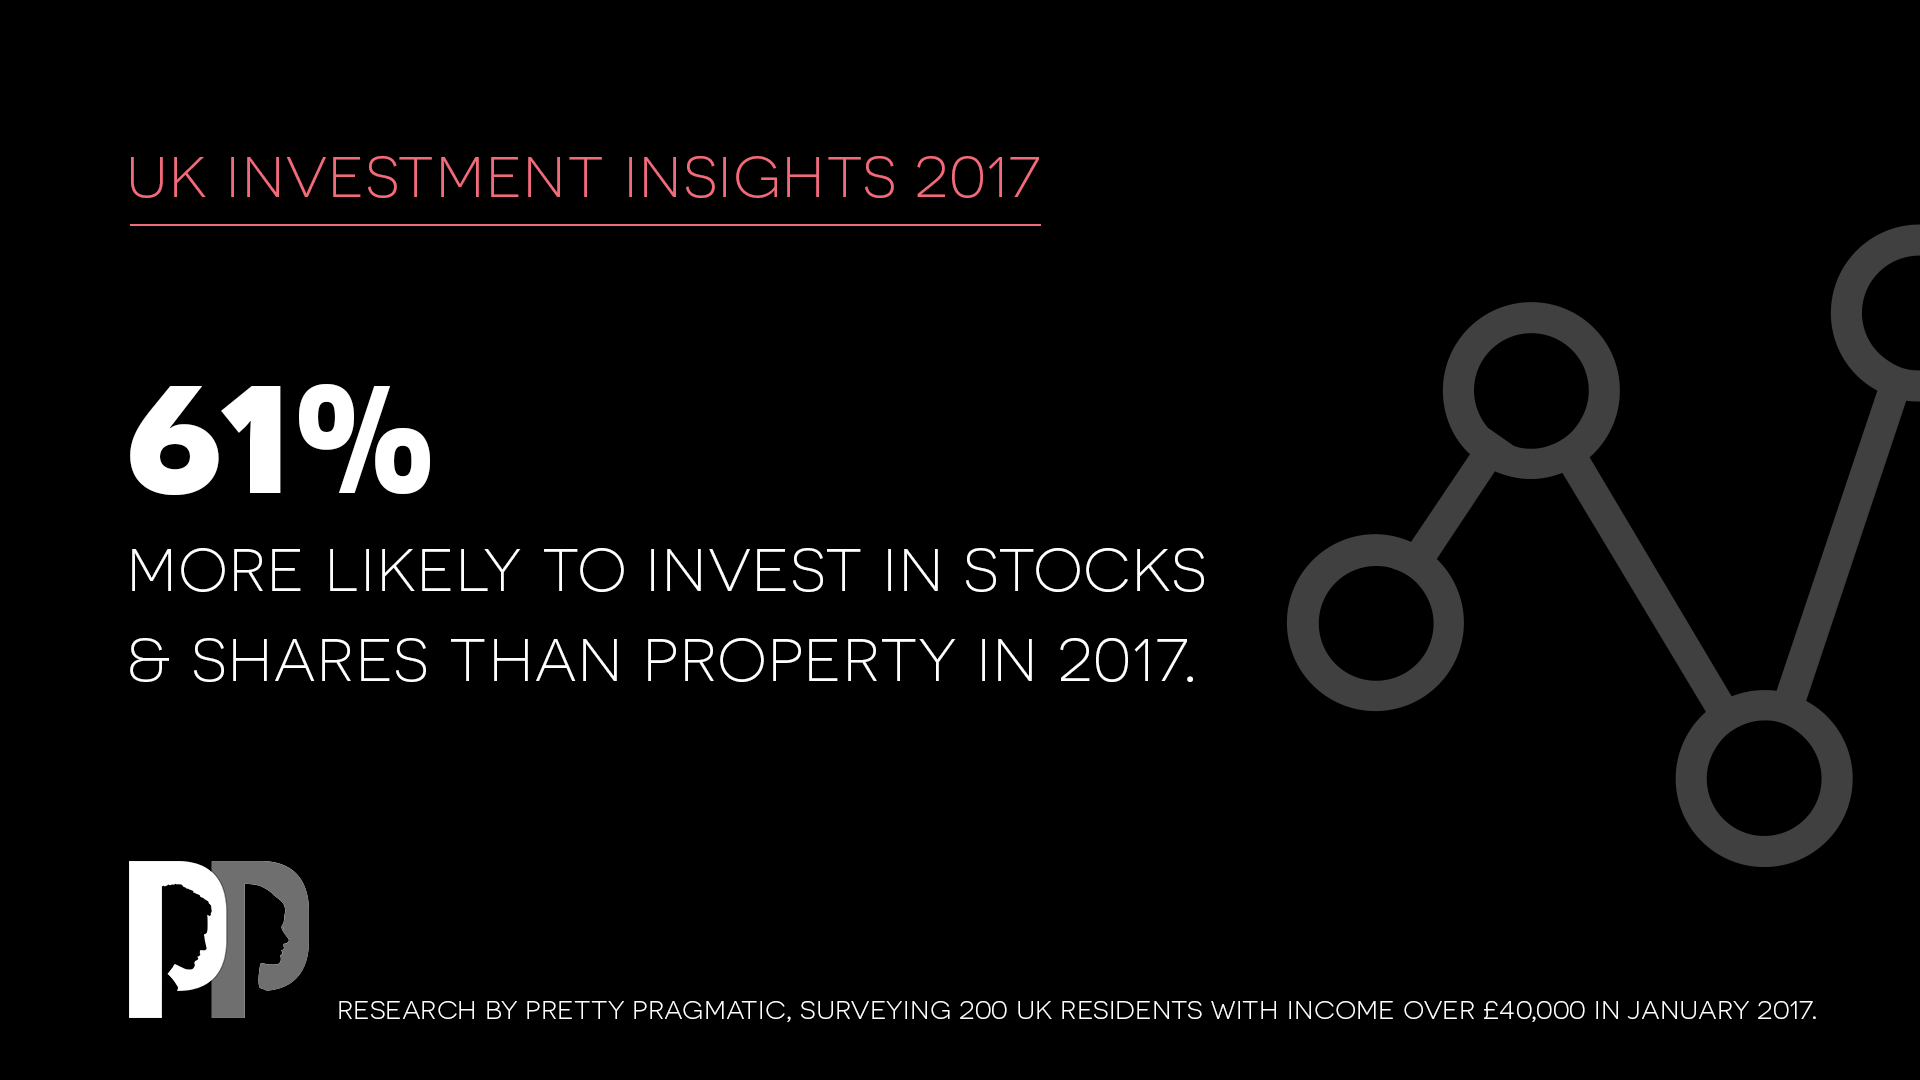 invest 2017 image 1